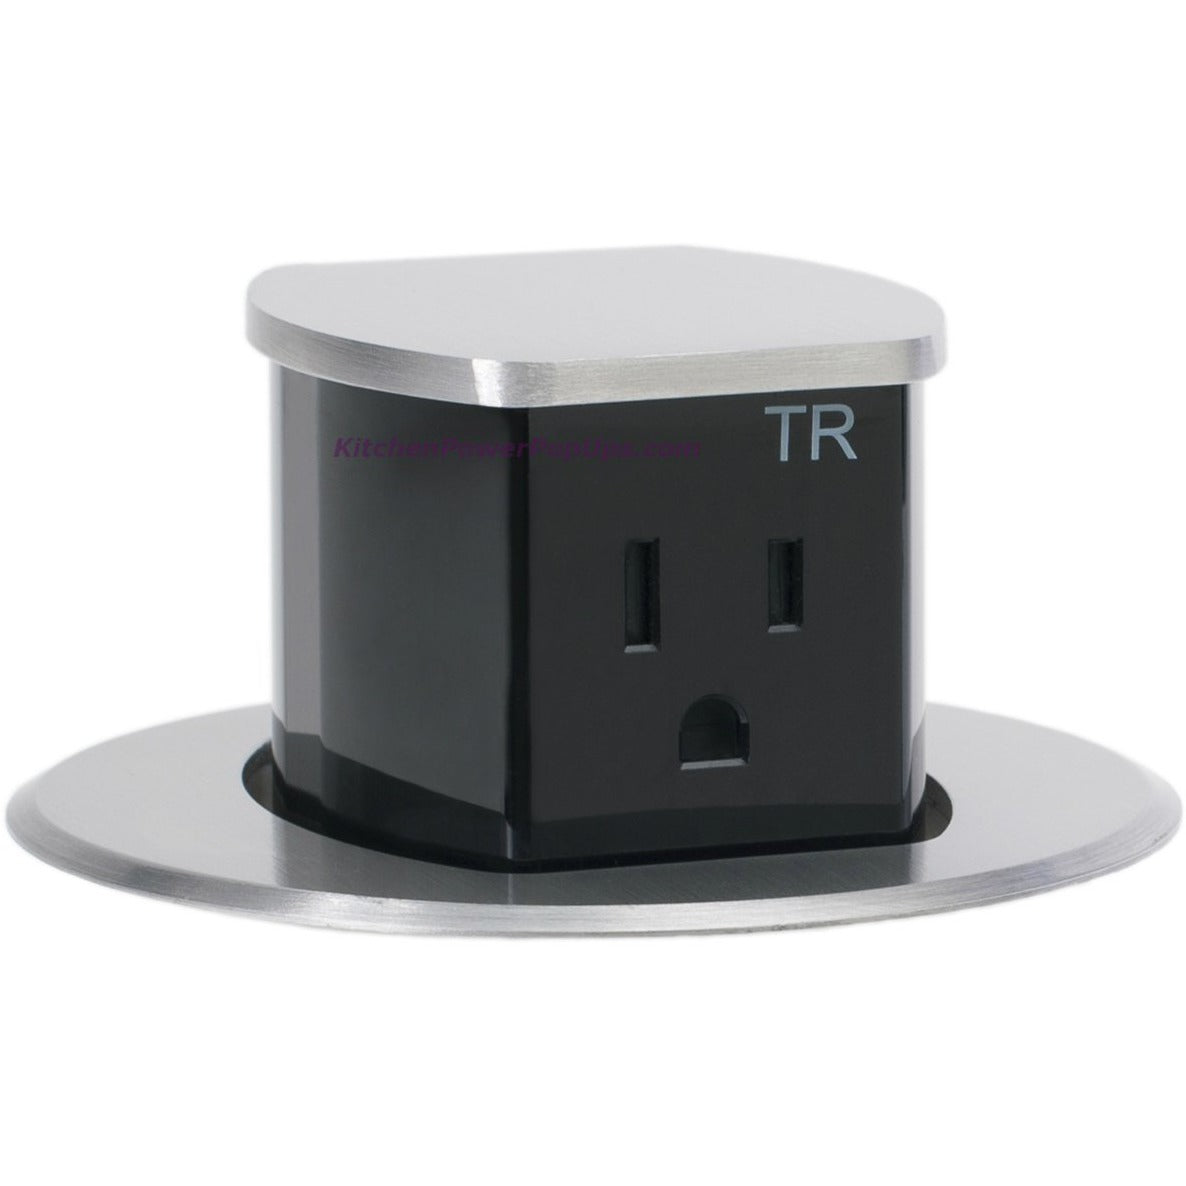 Hubbell Rct200alu Waterproof Dual Sided Pop Up Counter Outlet